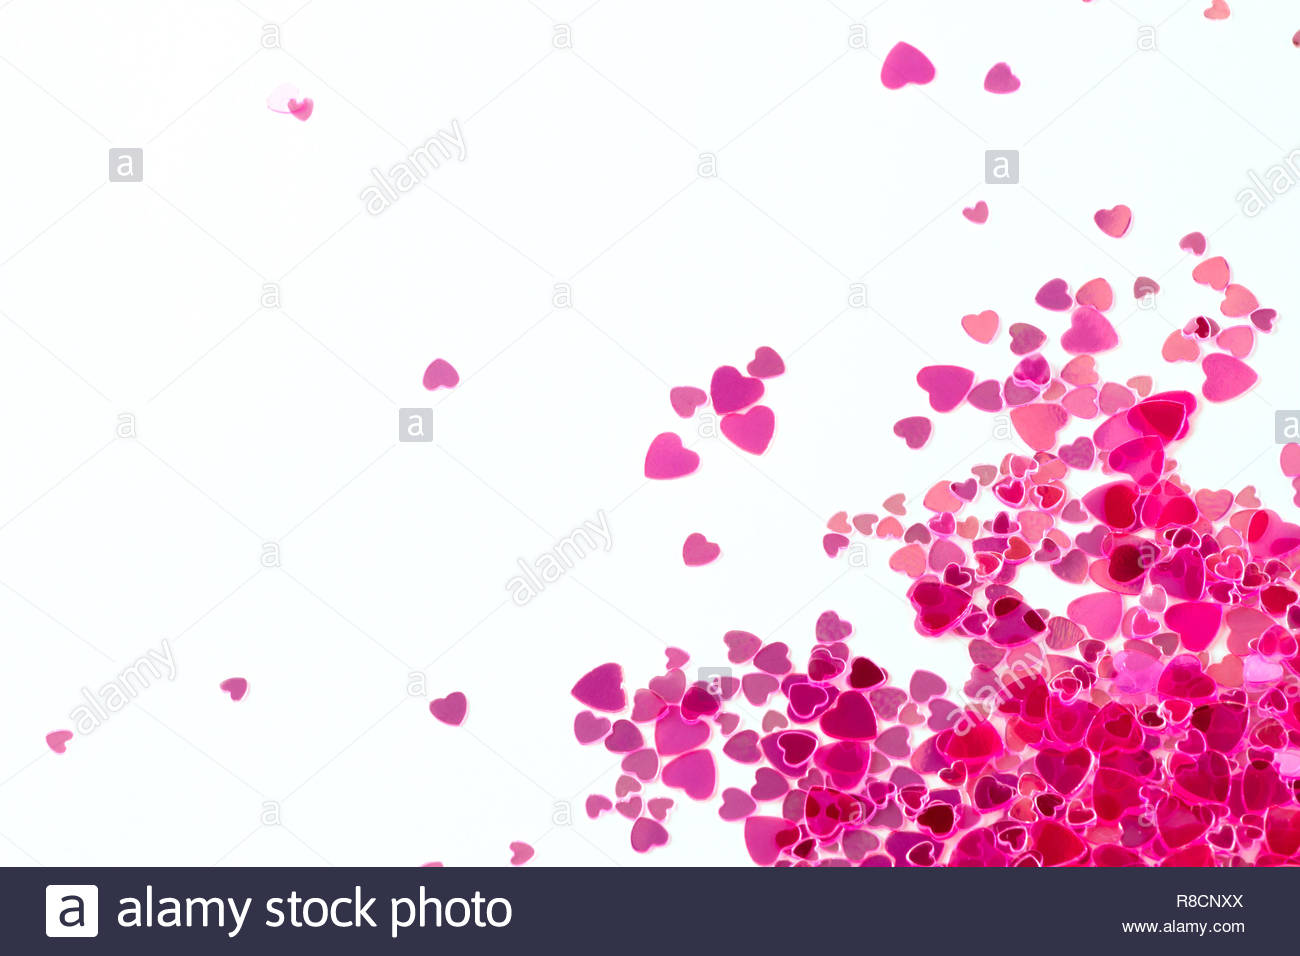 Pink sequins on a pink pastel background with confetti as asterisks. - Stock Image